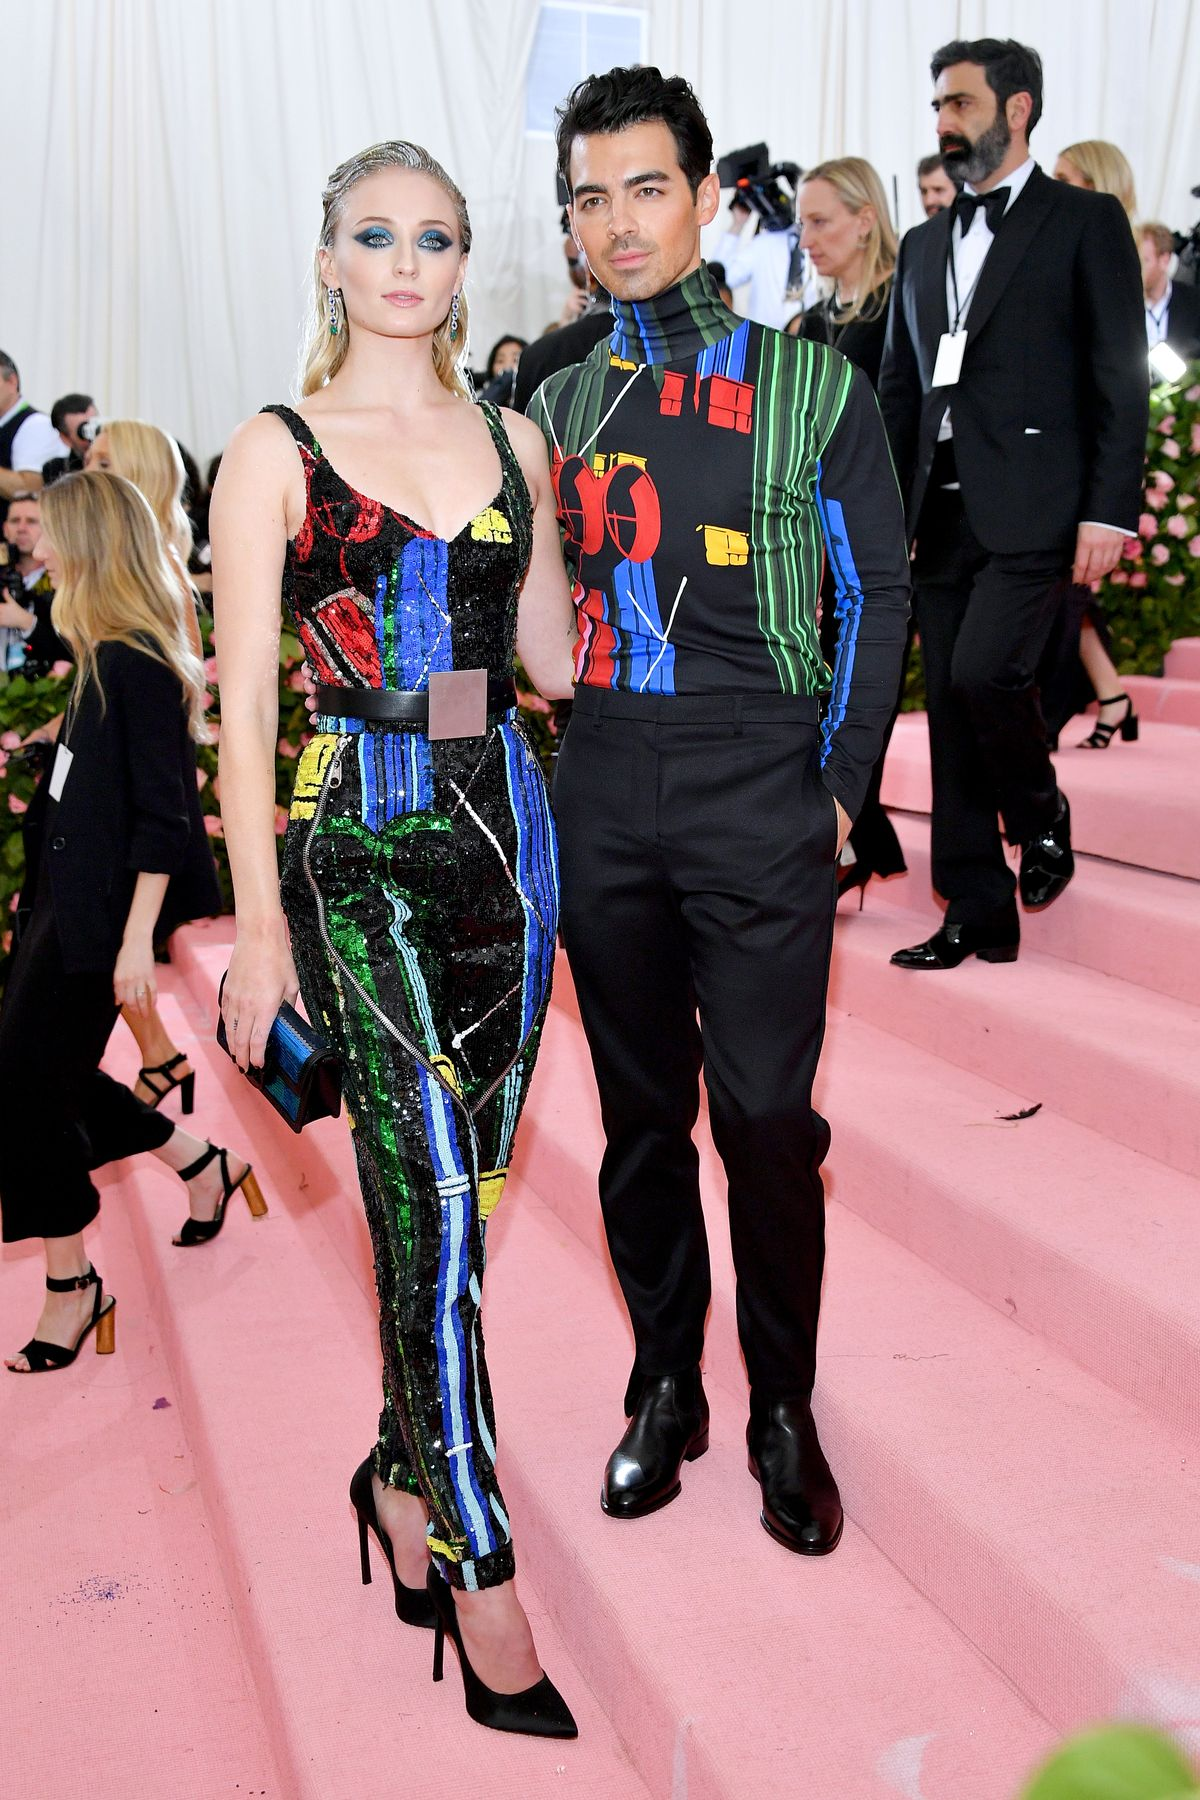 Joe And Nick Jonas Were Upstaged By Their Wives At The 2019 Met Gala